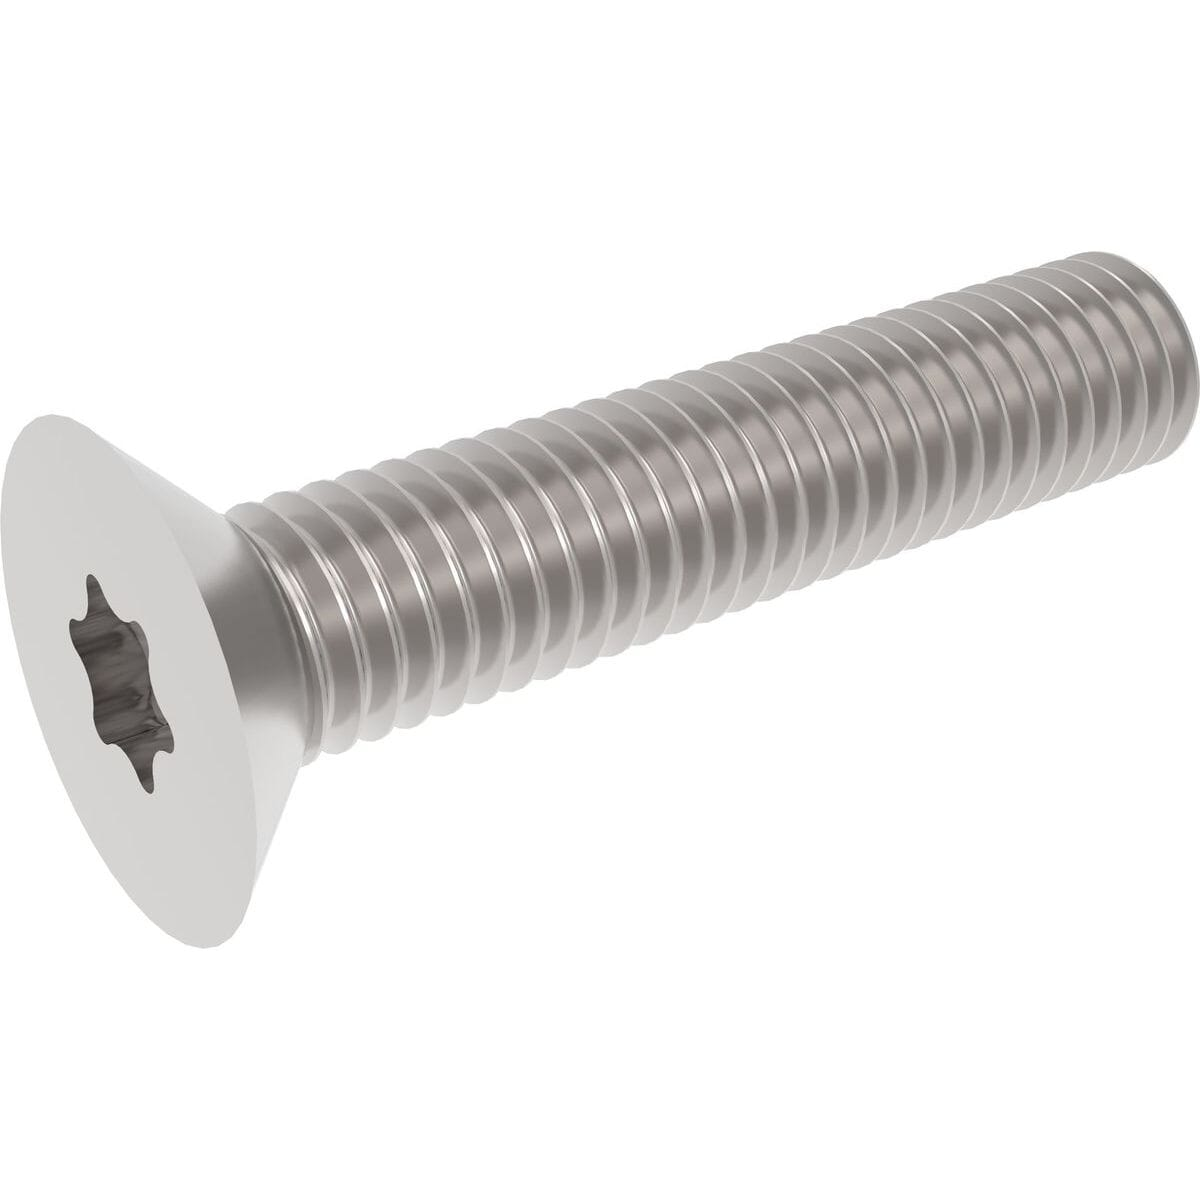 M6 x 80mm Torx Countersunk Screws (ISO 14581) - Stainless Steel (A2)